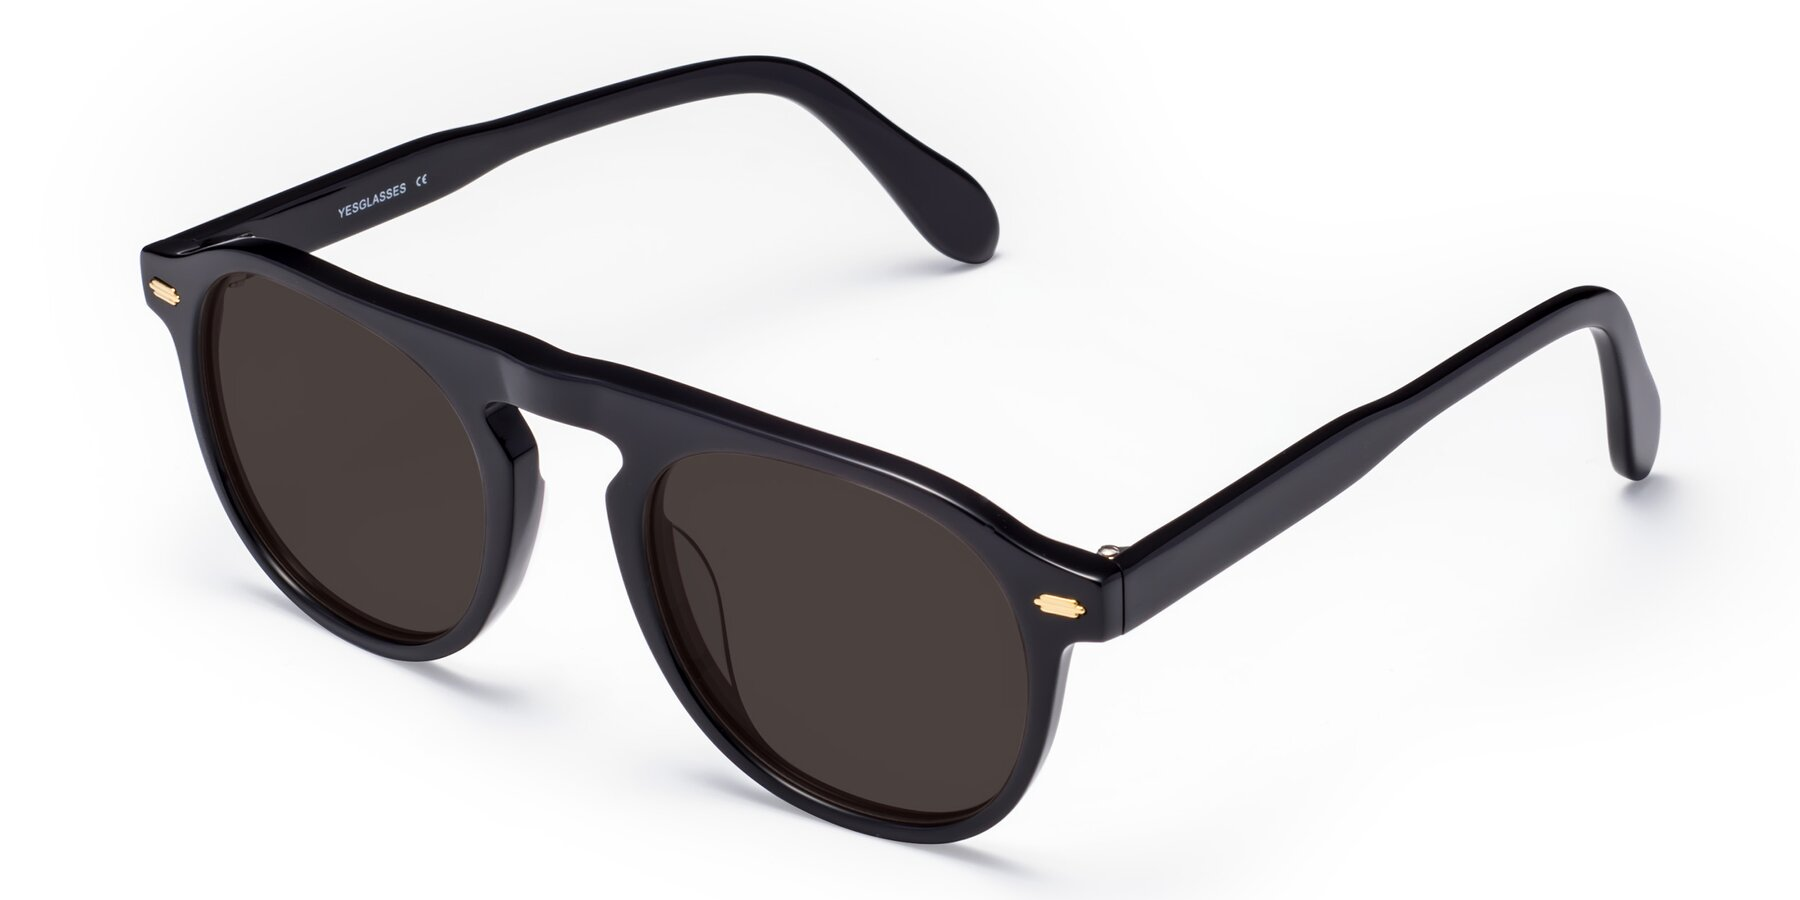 Angle of Mufasa in Black with Gray Tinted Lenses